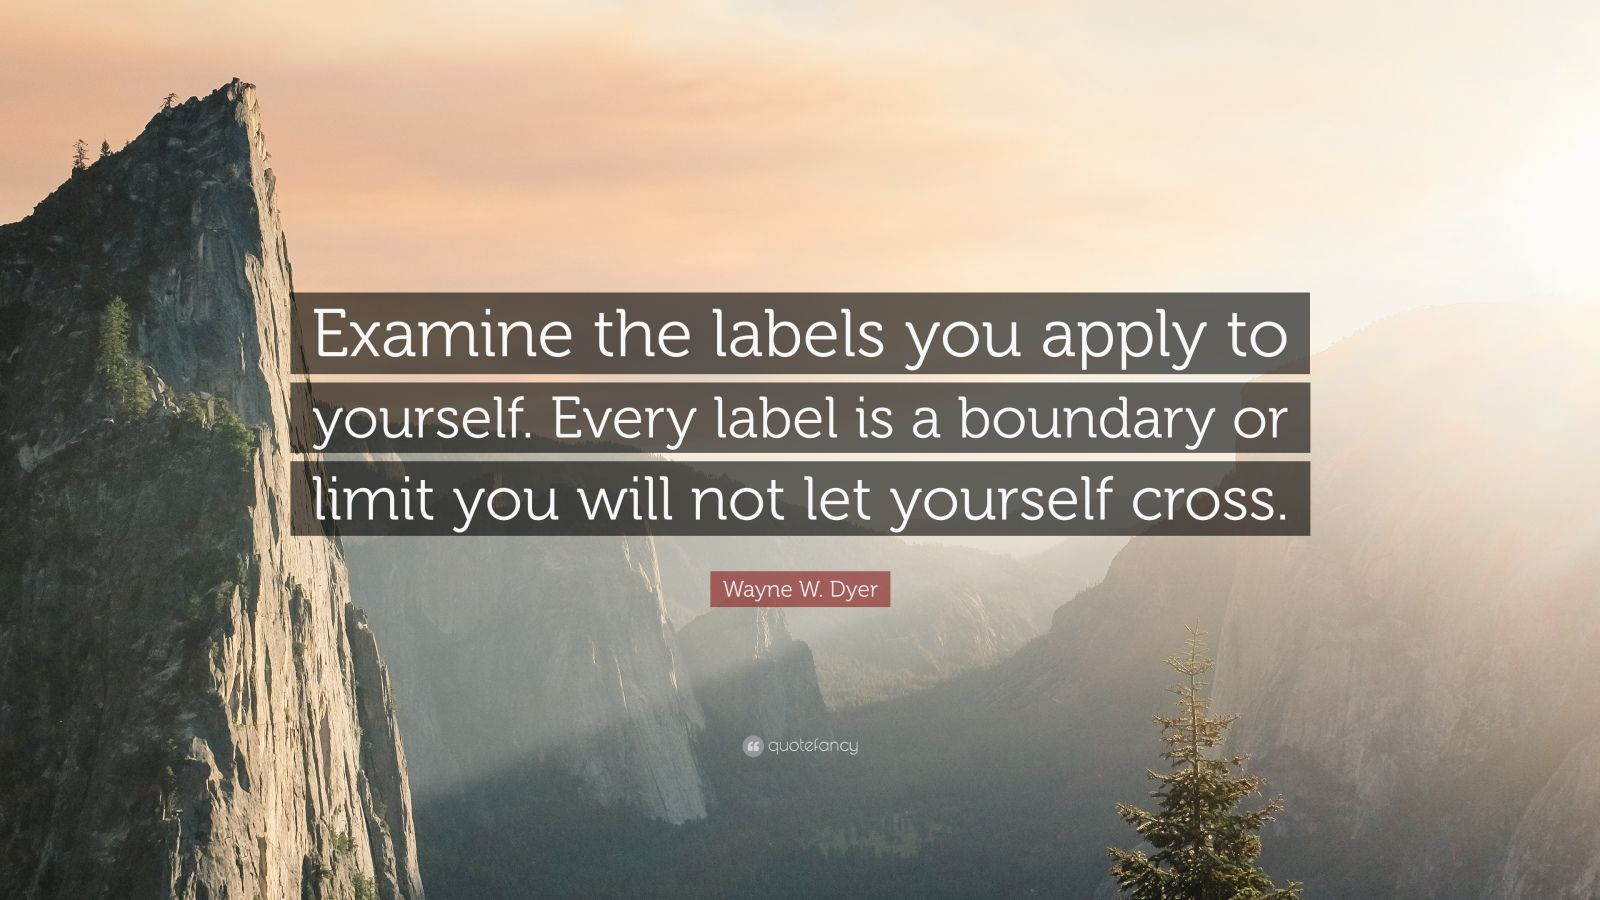 """Wayne W. Dyer Quote: """"Examine the labels you apply to yourself. Every label is a boundary or limit you will not let yourself cross."""""""